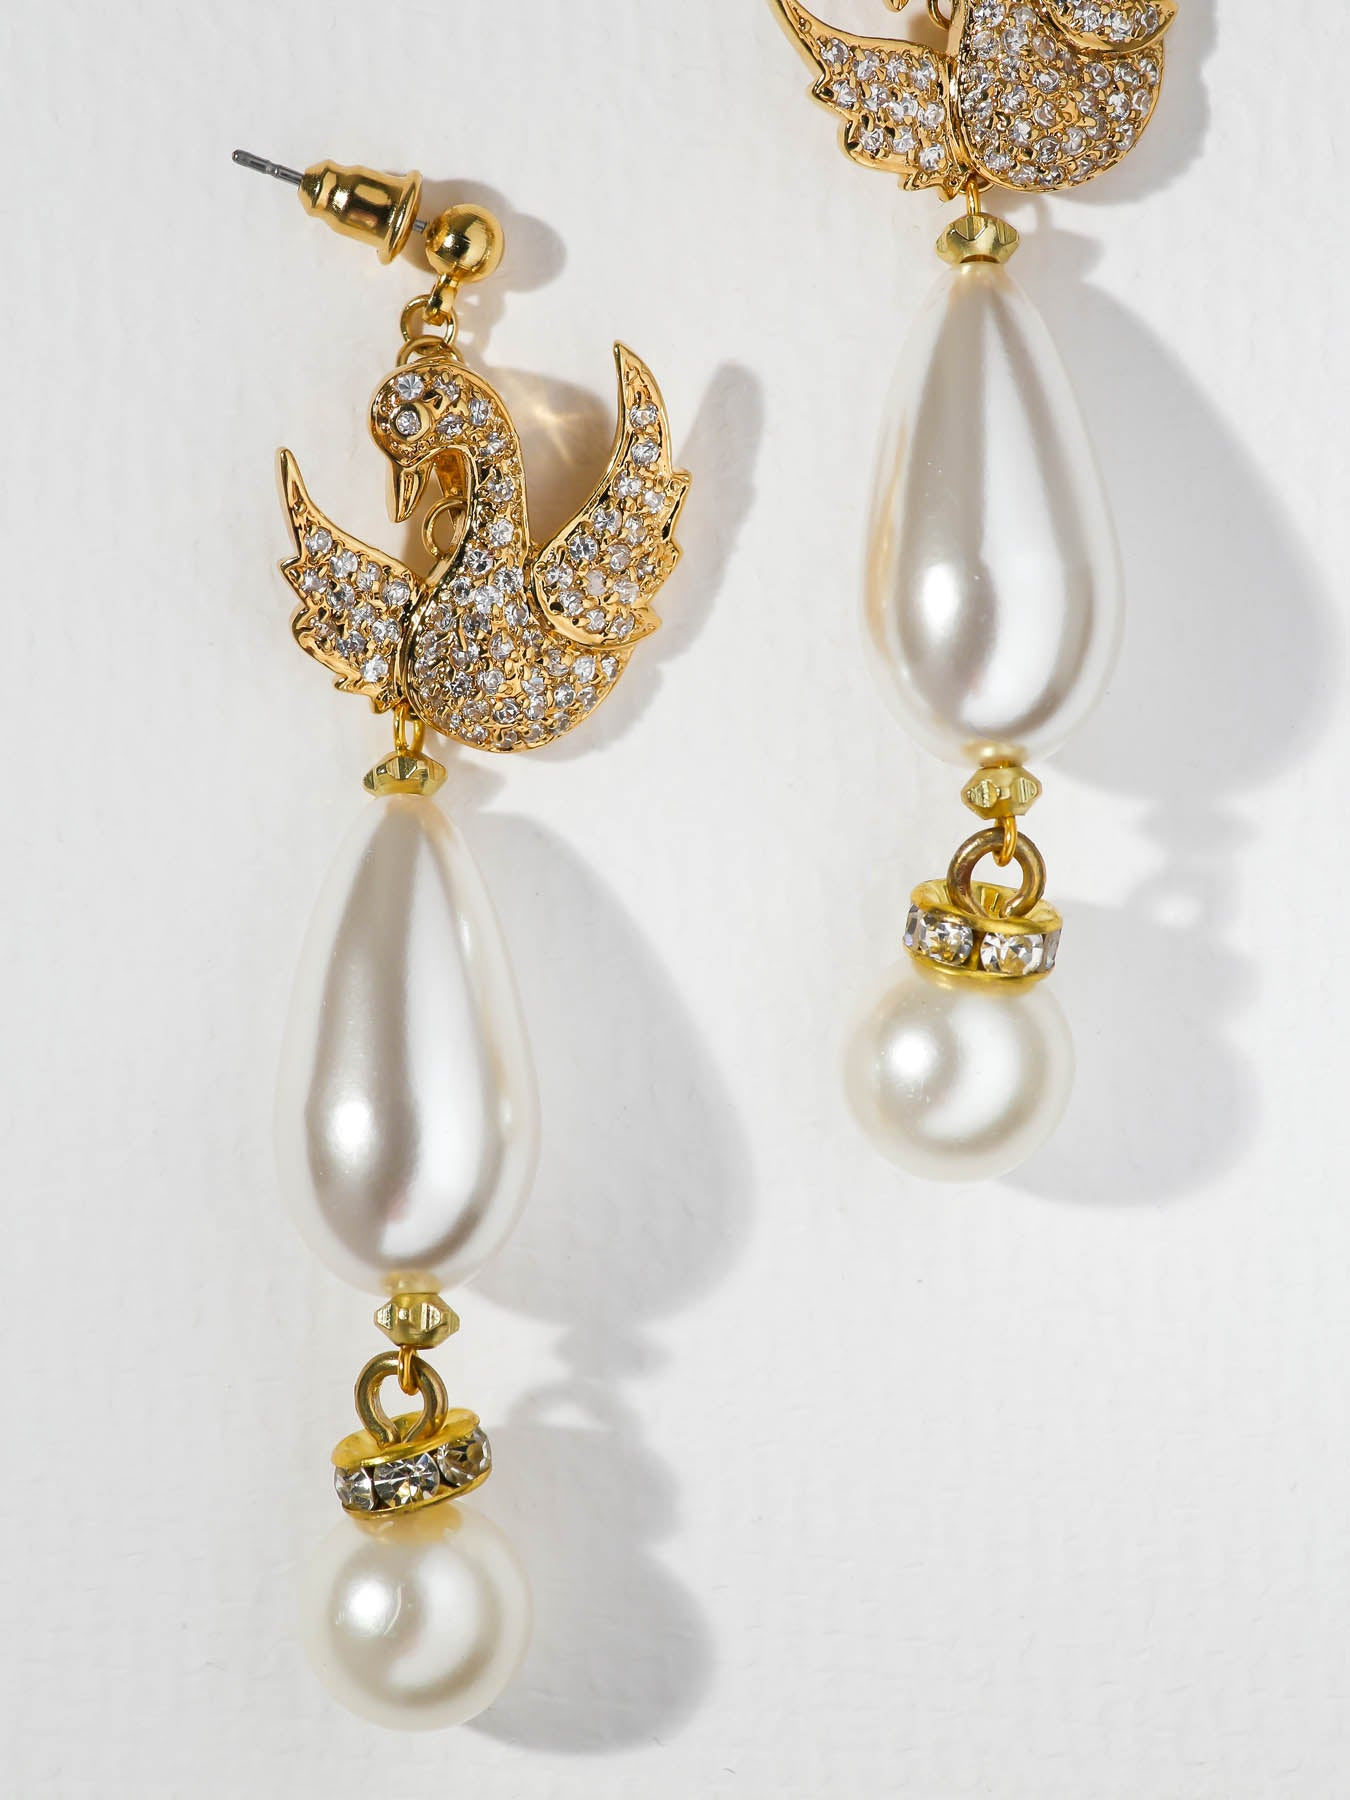 The Sweet Swan Earrings